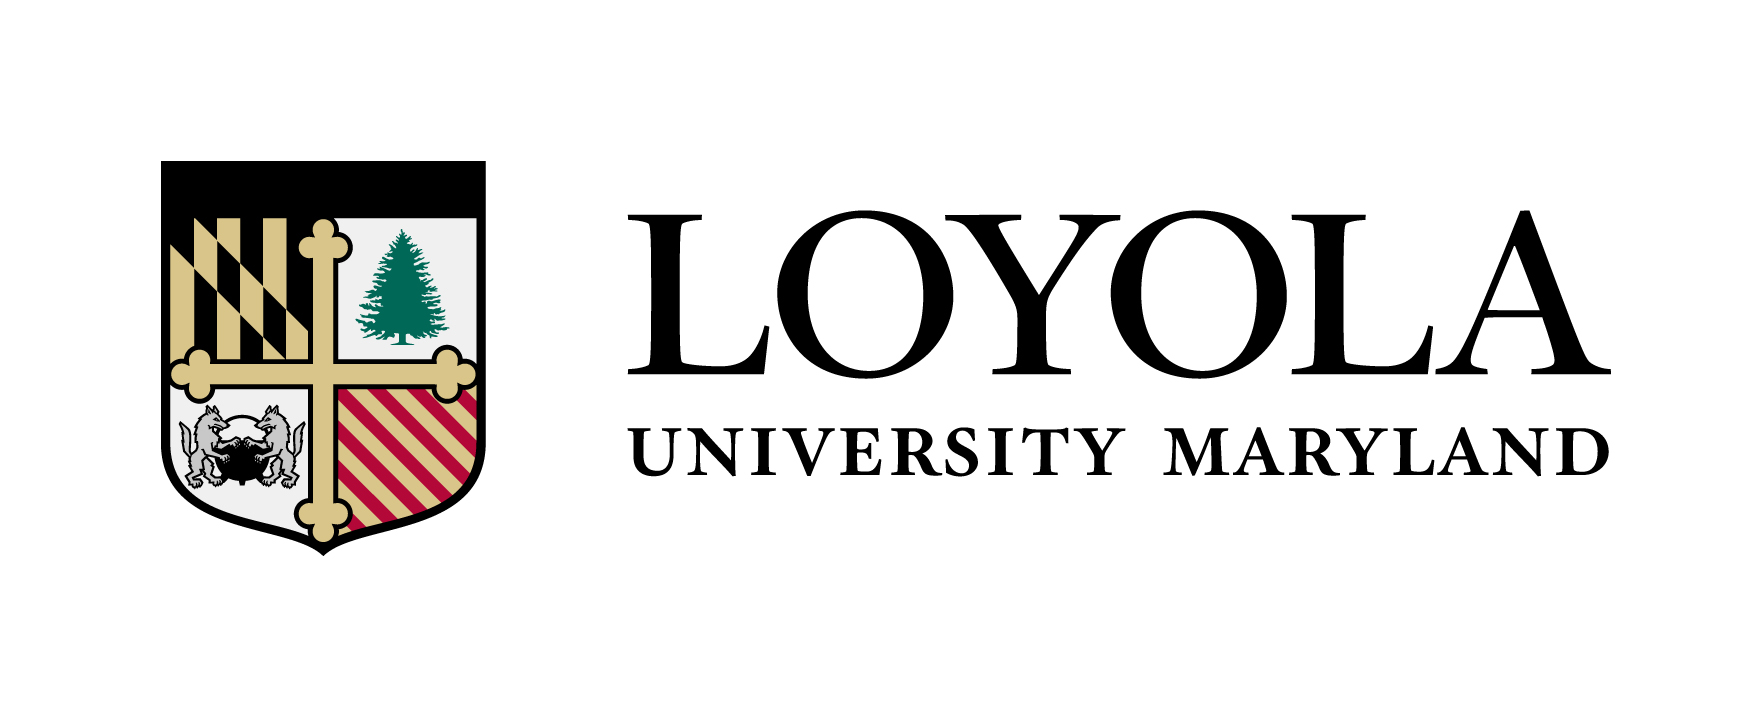 Loyola University Maryland Banner.jpg